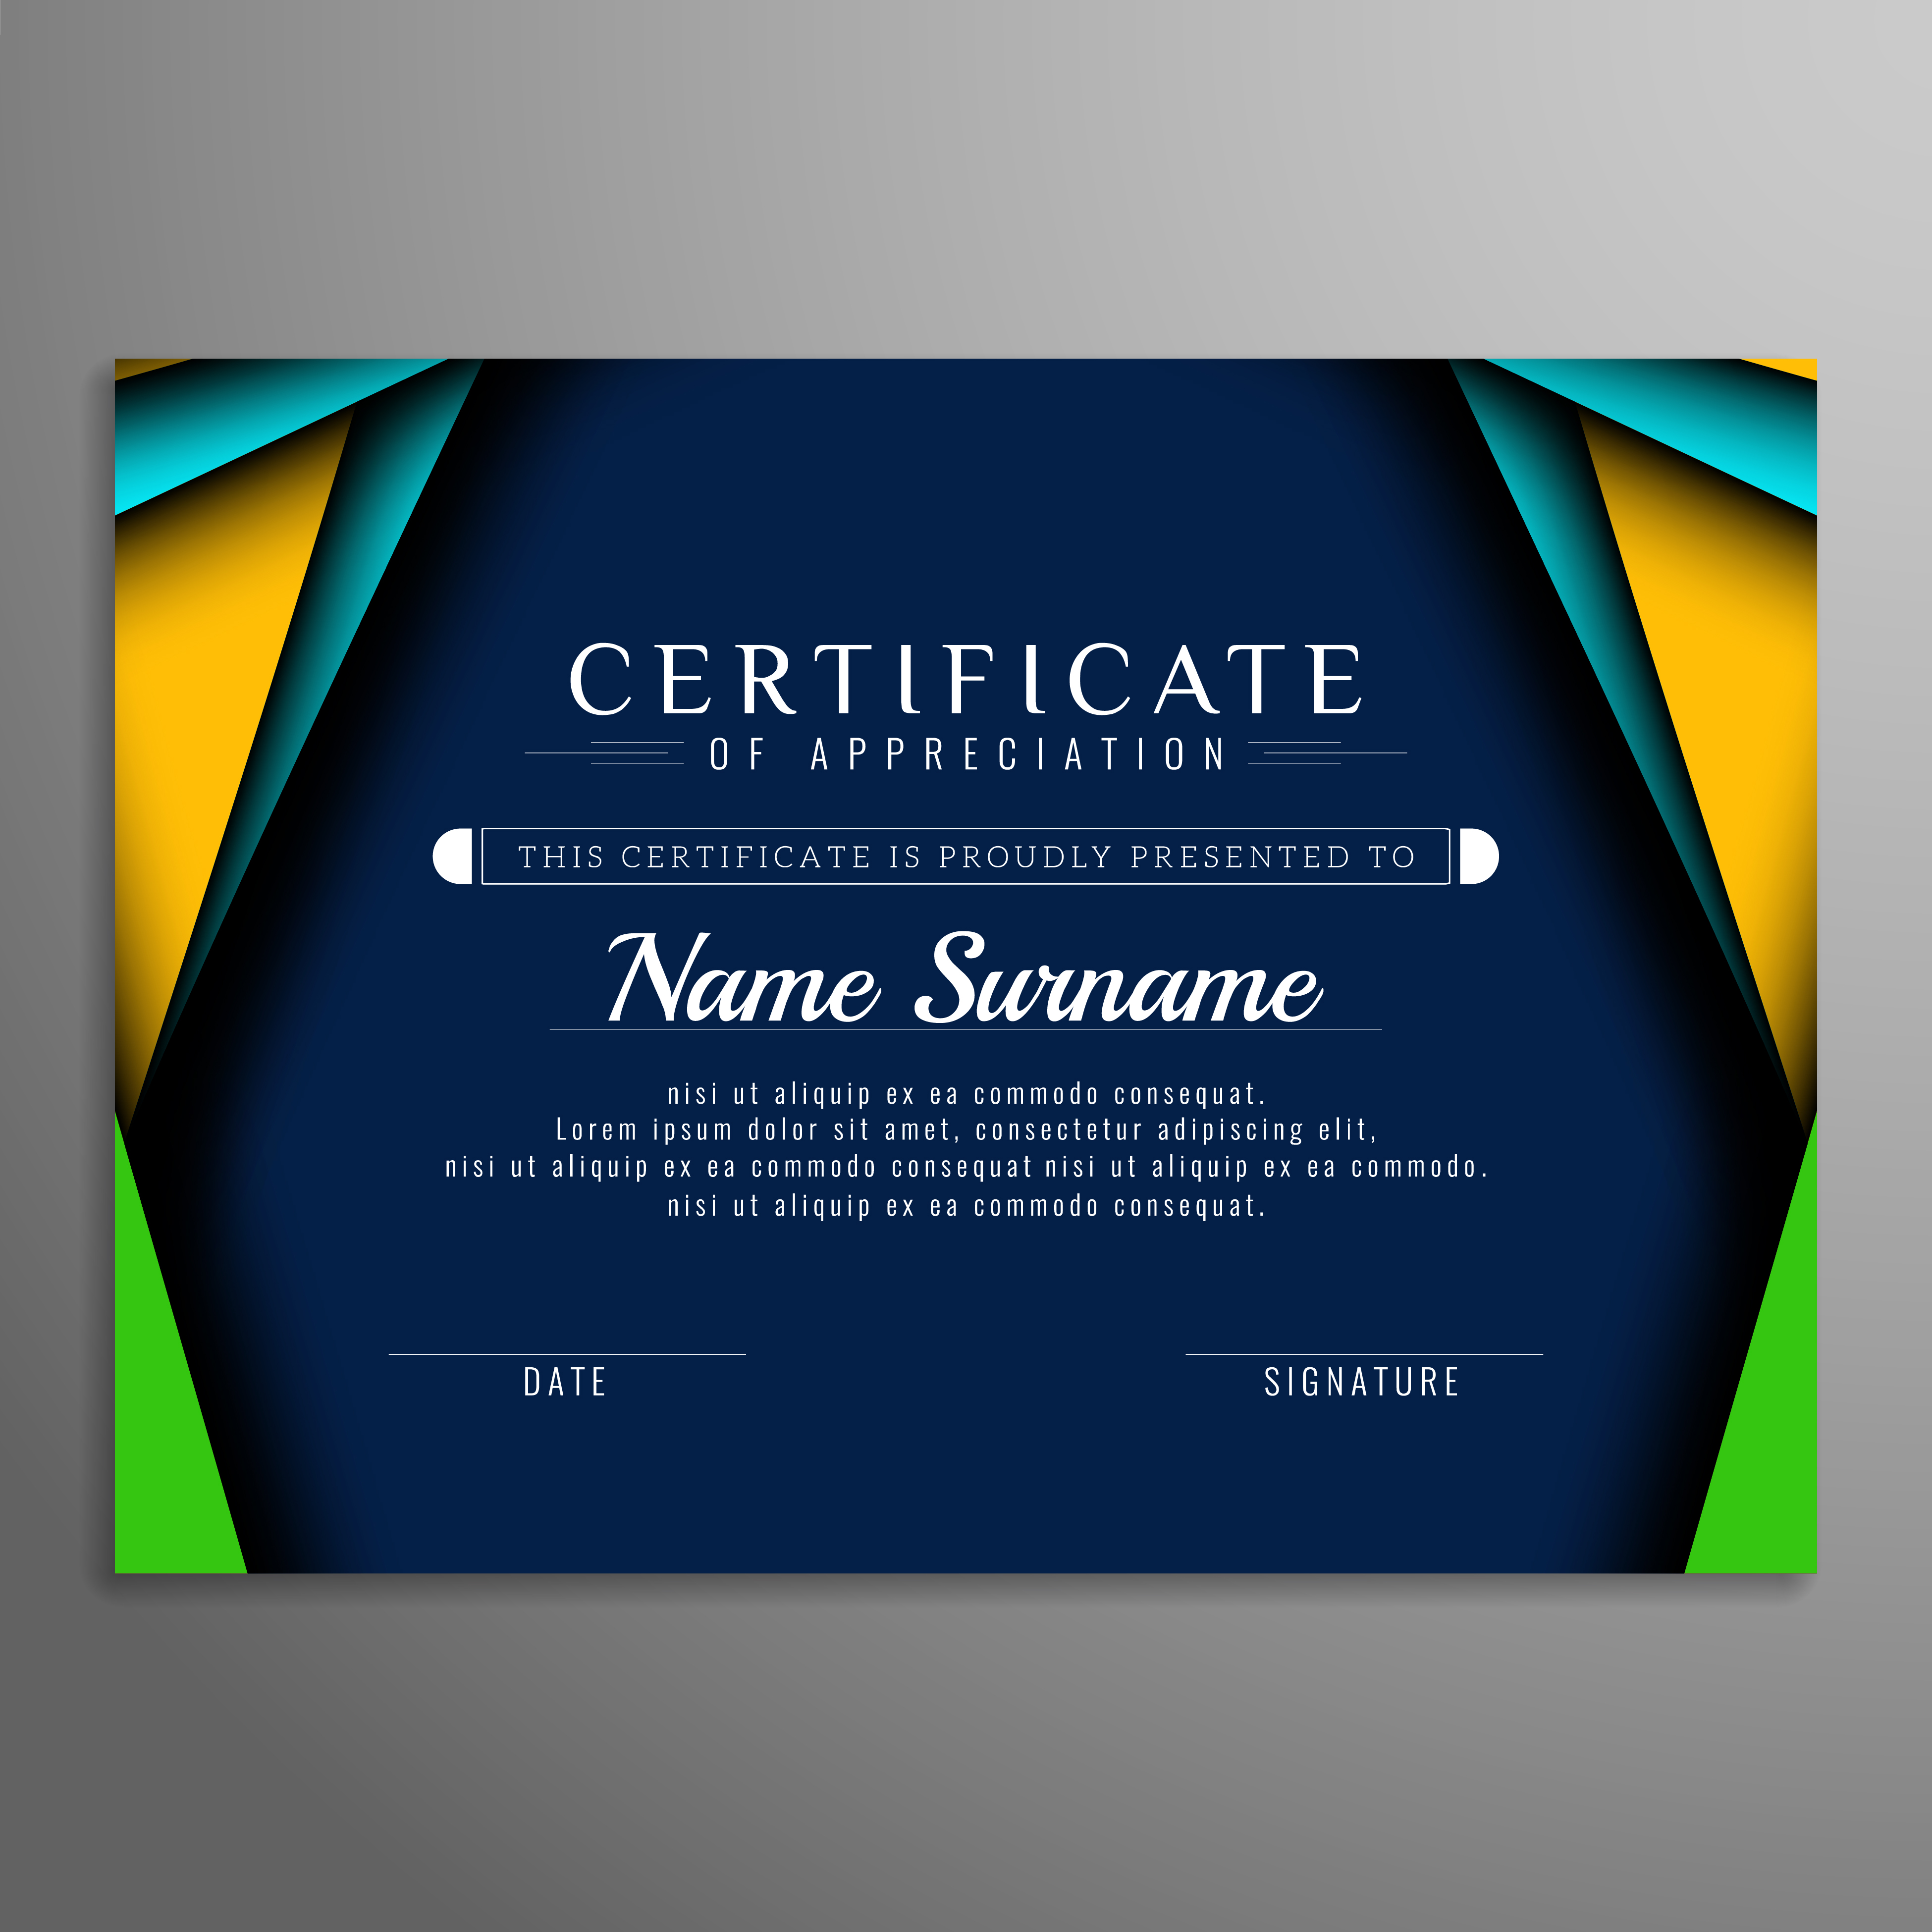 Abstract Elegant Colorful Certificate Background Download Free Vectors Clipart Graphics Vector Art